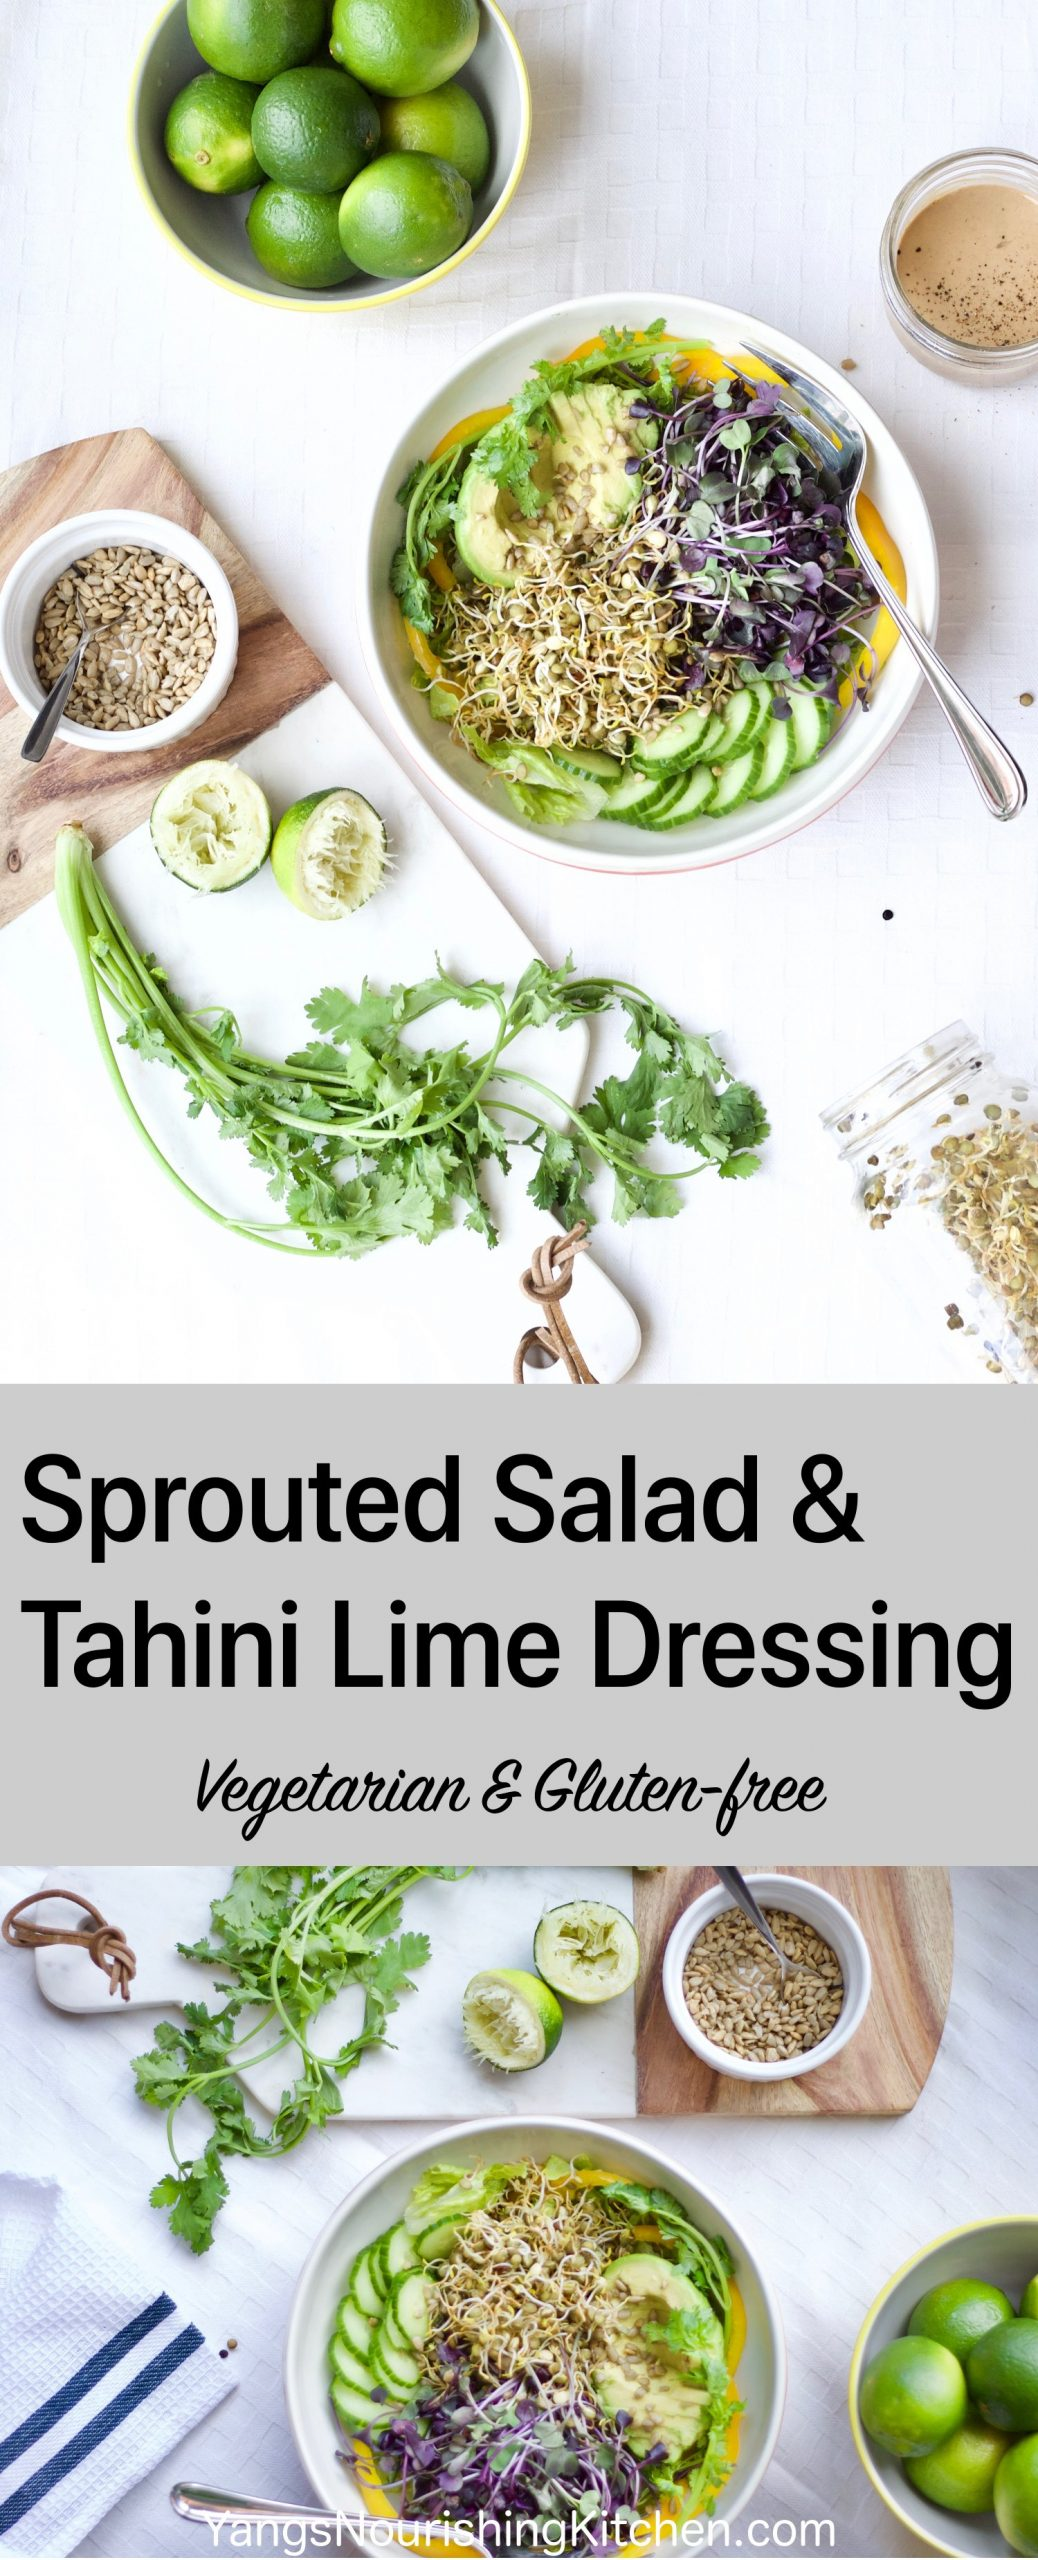 Tahini Lime Dressing + Sprouted Salad